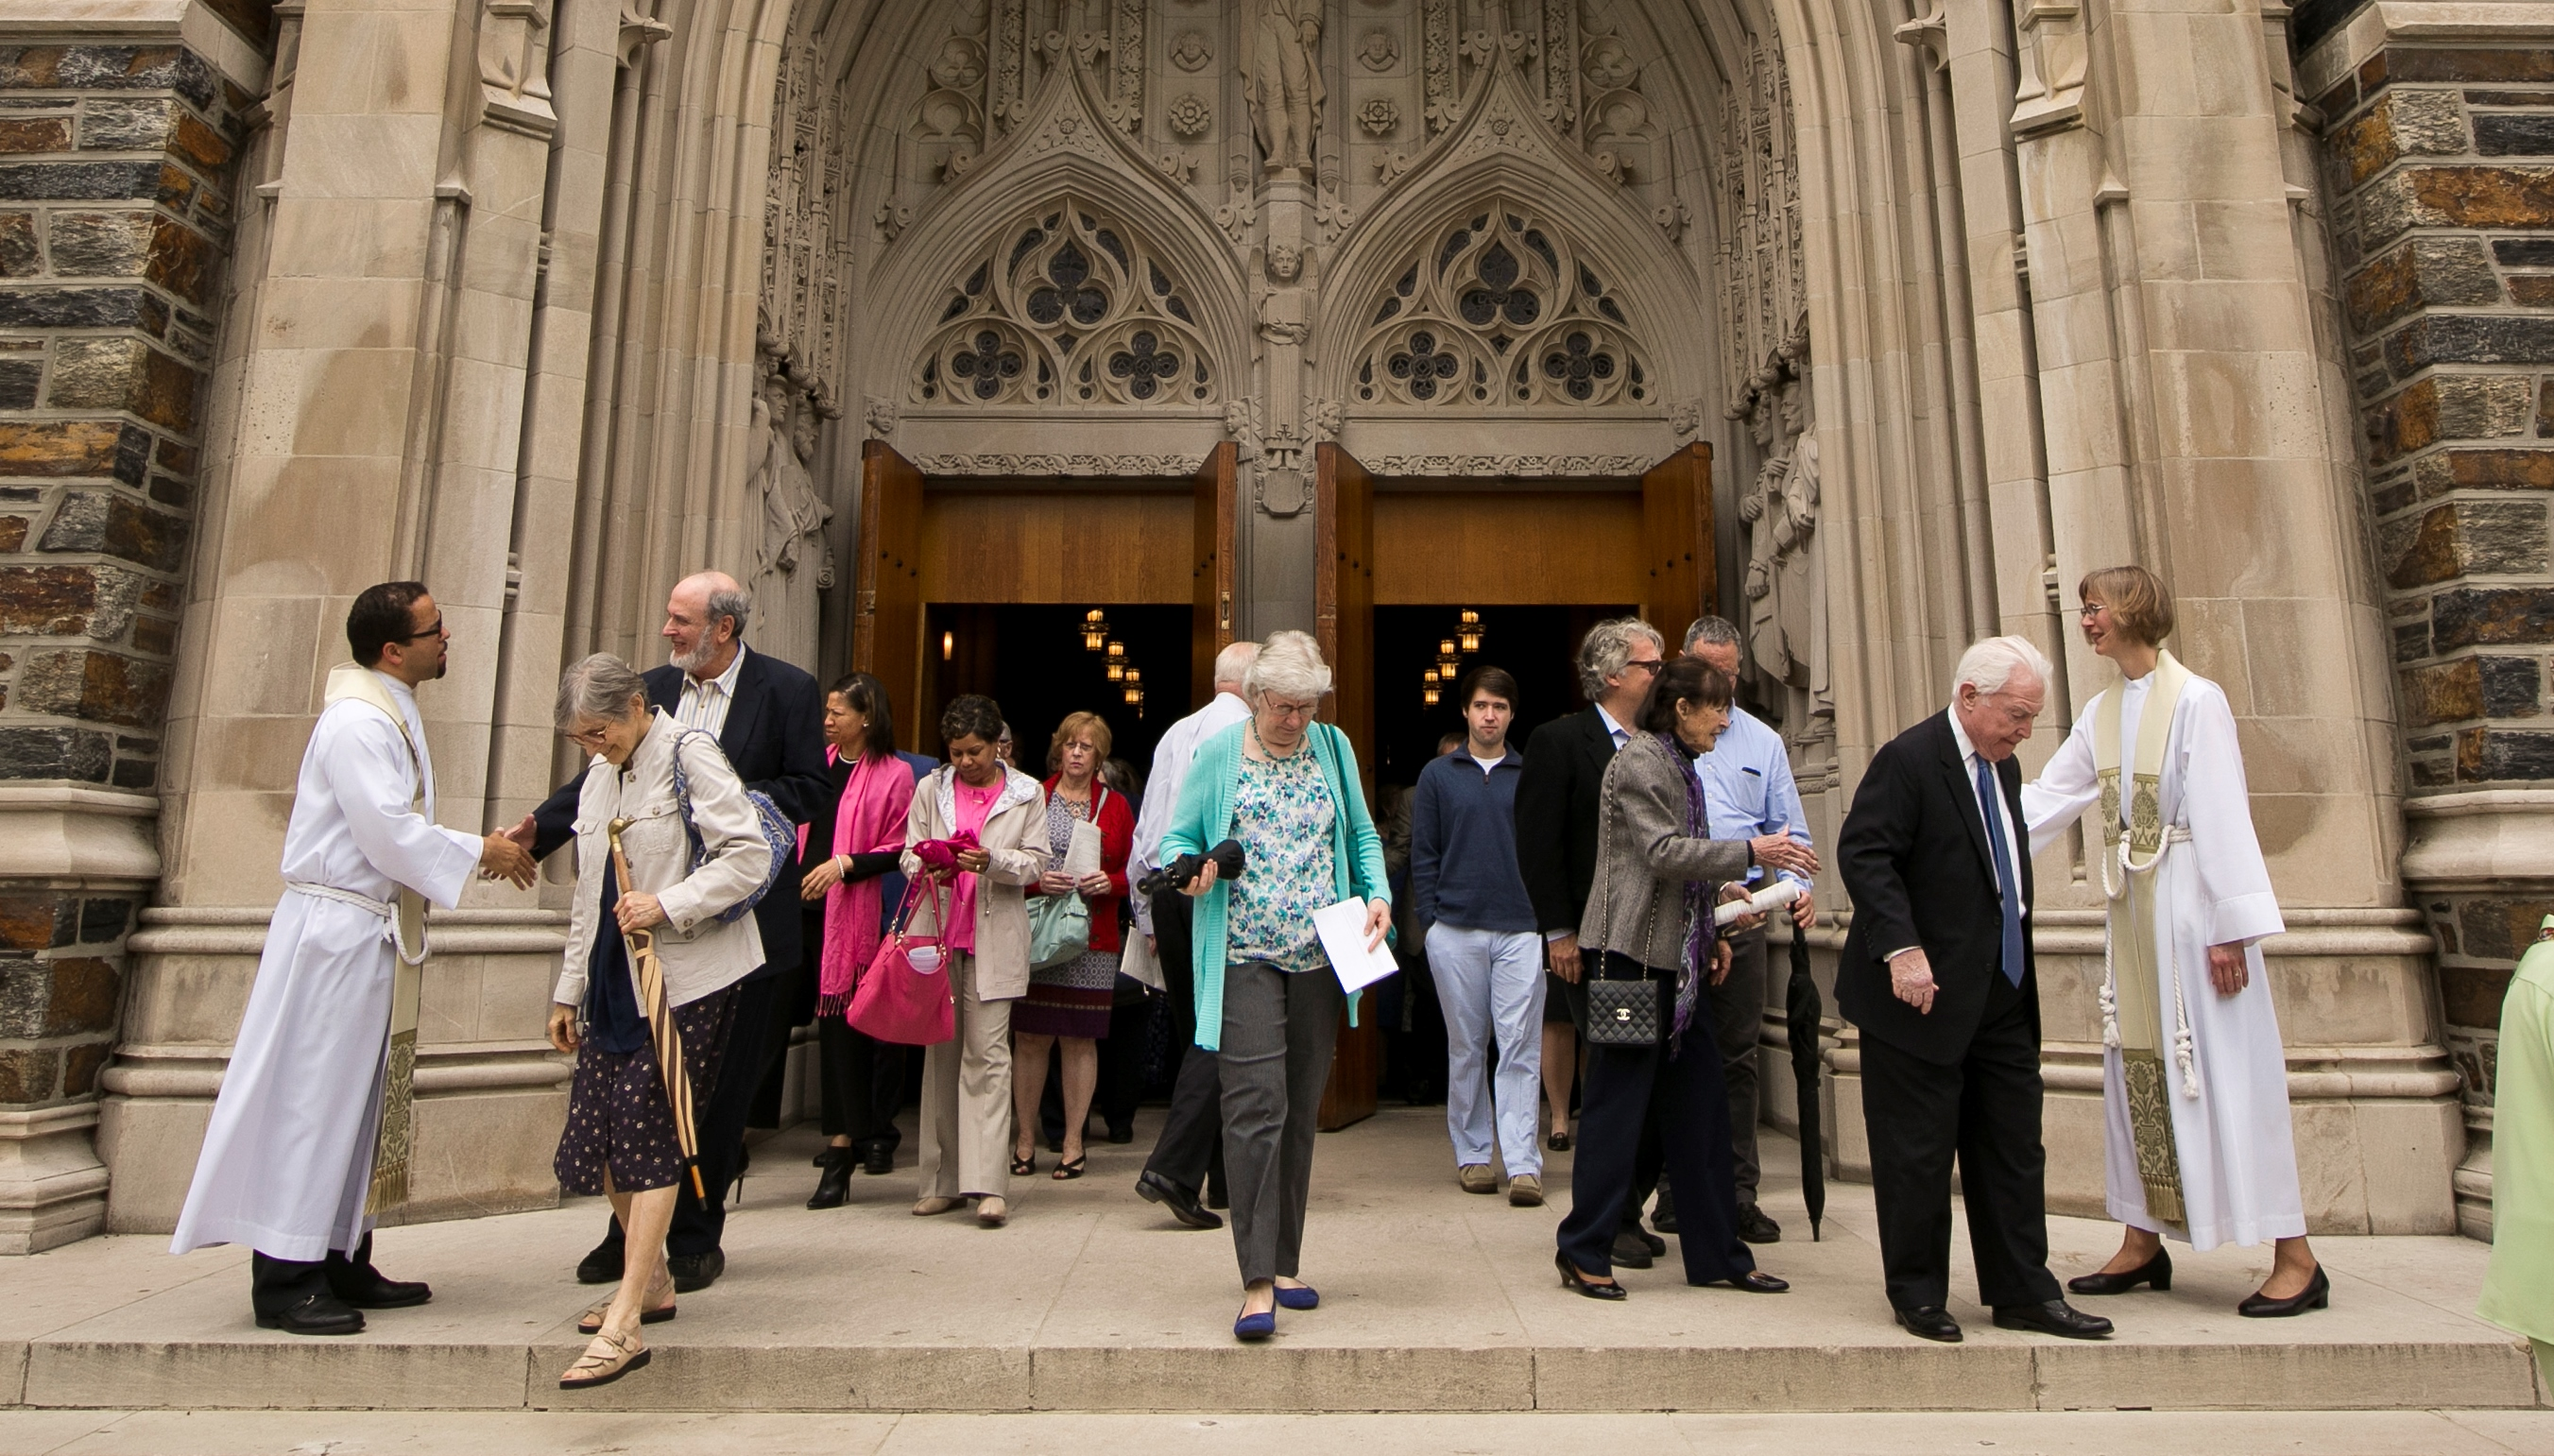 photo of people exiting worship service 2016